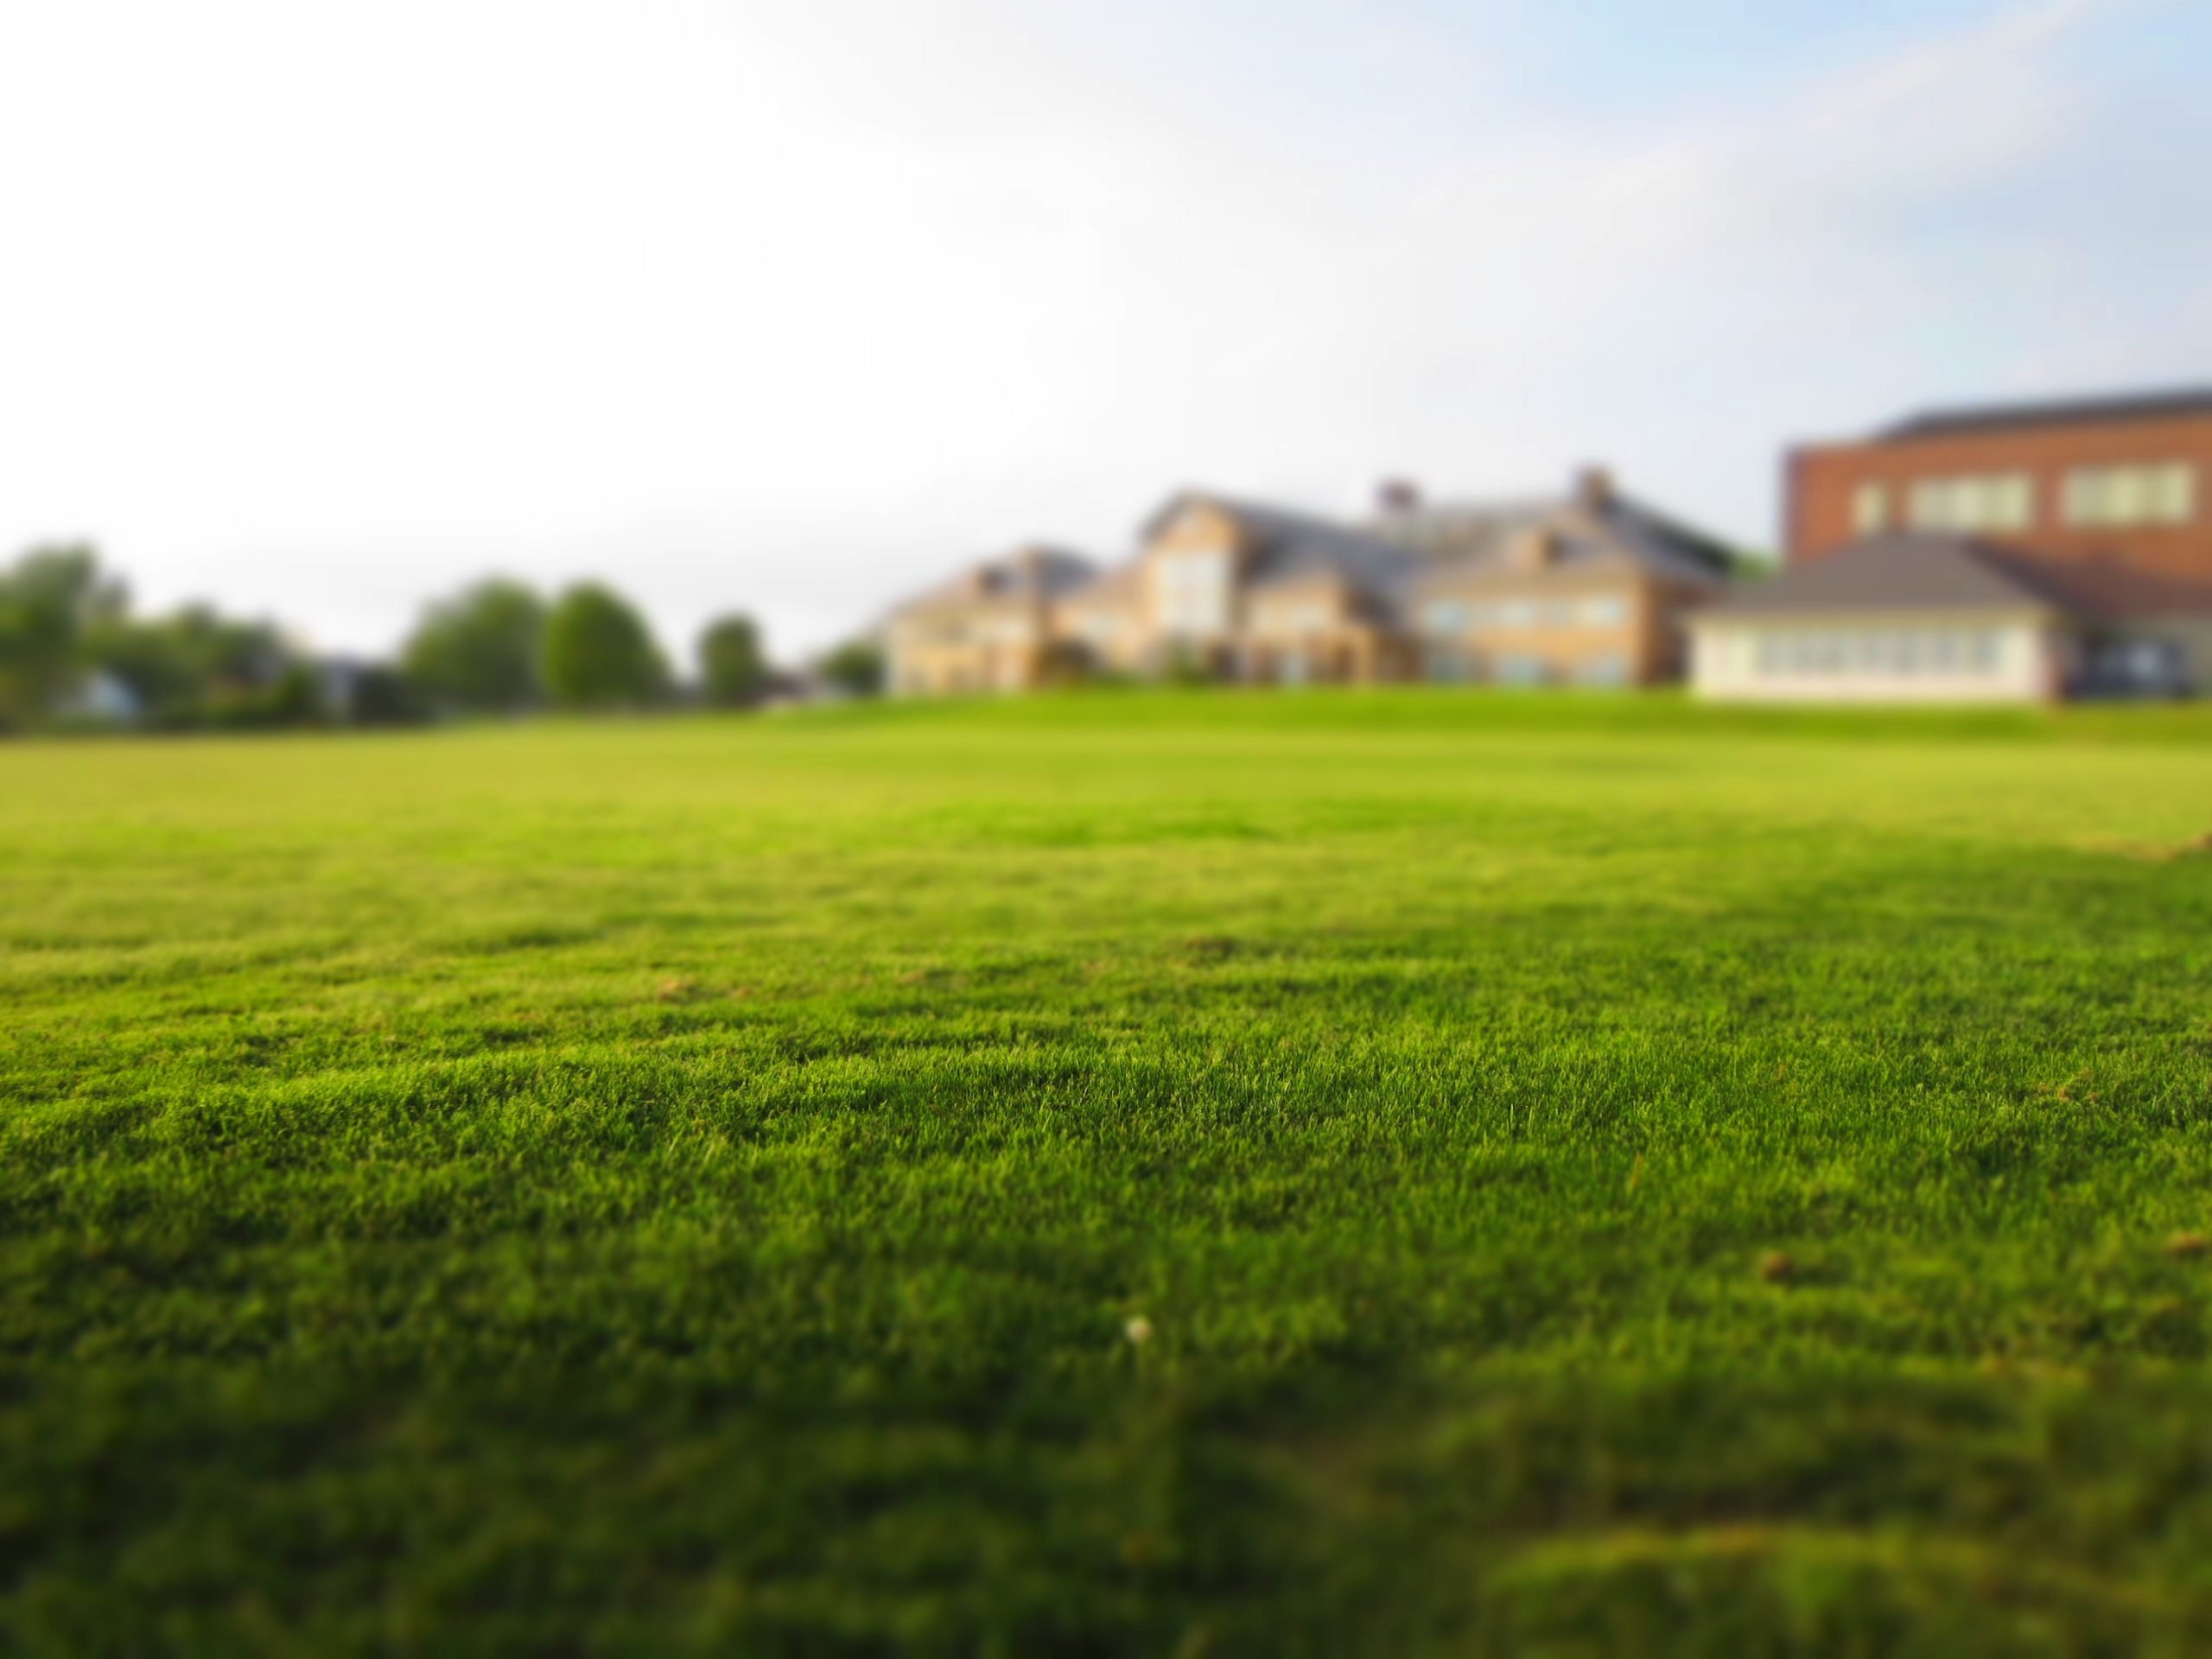 The Grass Is Greener…Or Is It?